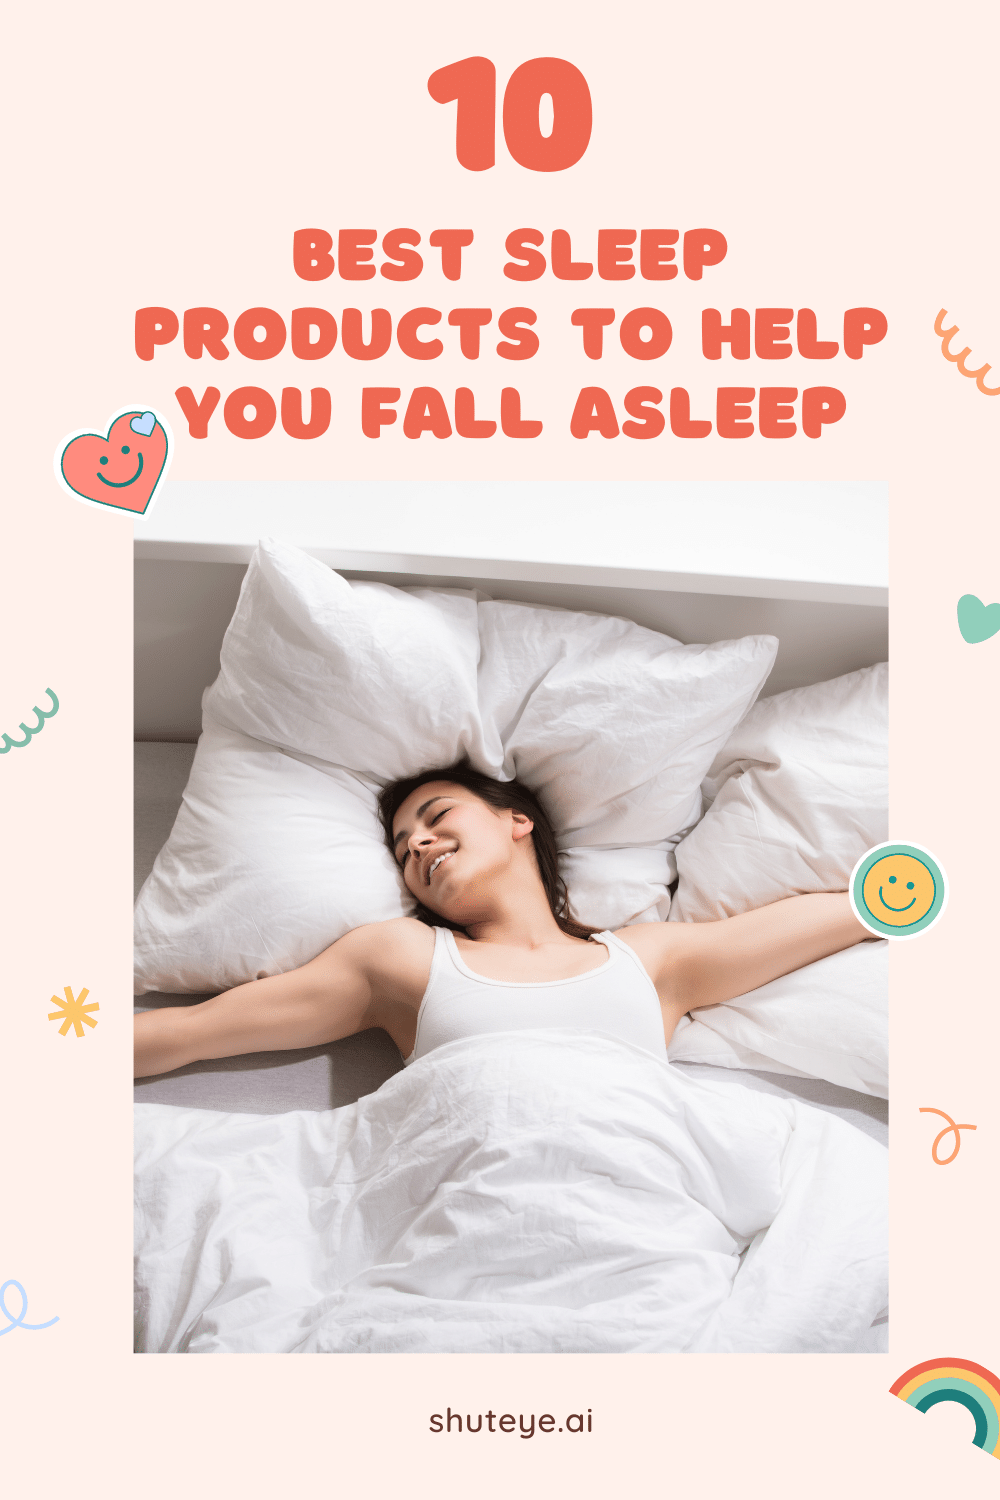 10 Best Sleep Products to Help You Fall Asleep Faster in 2021